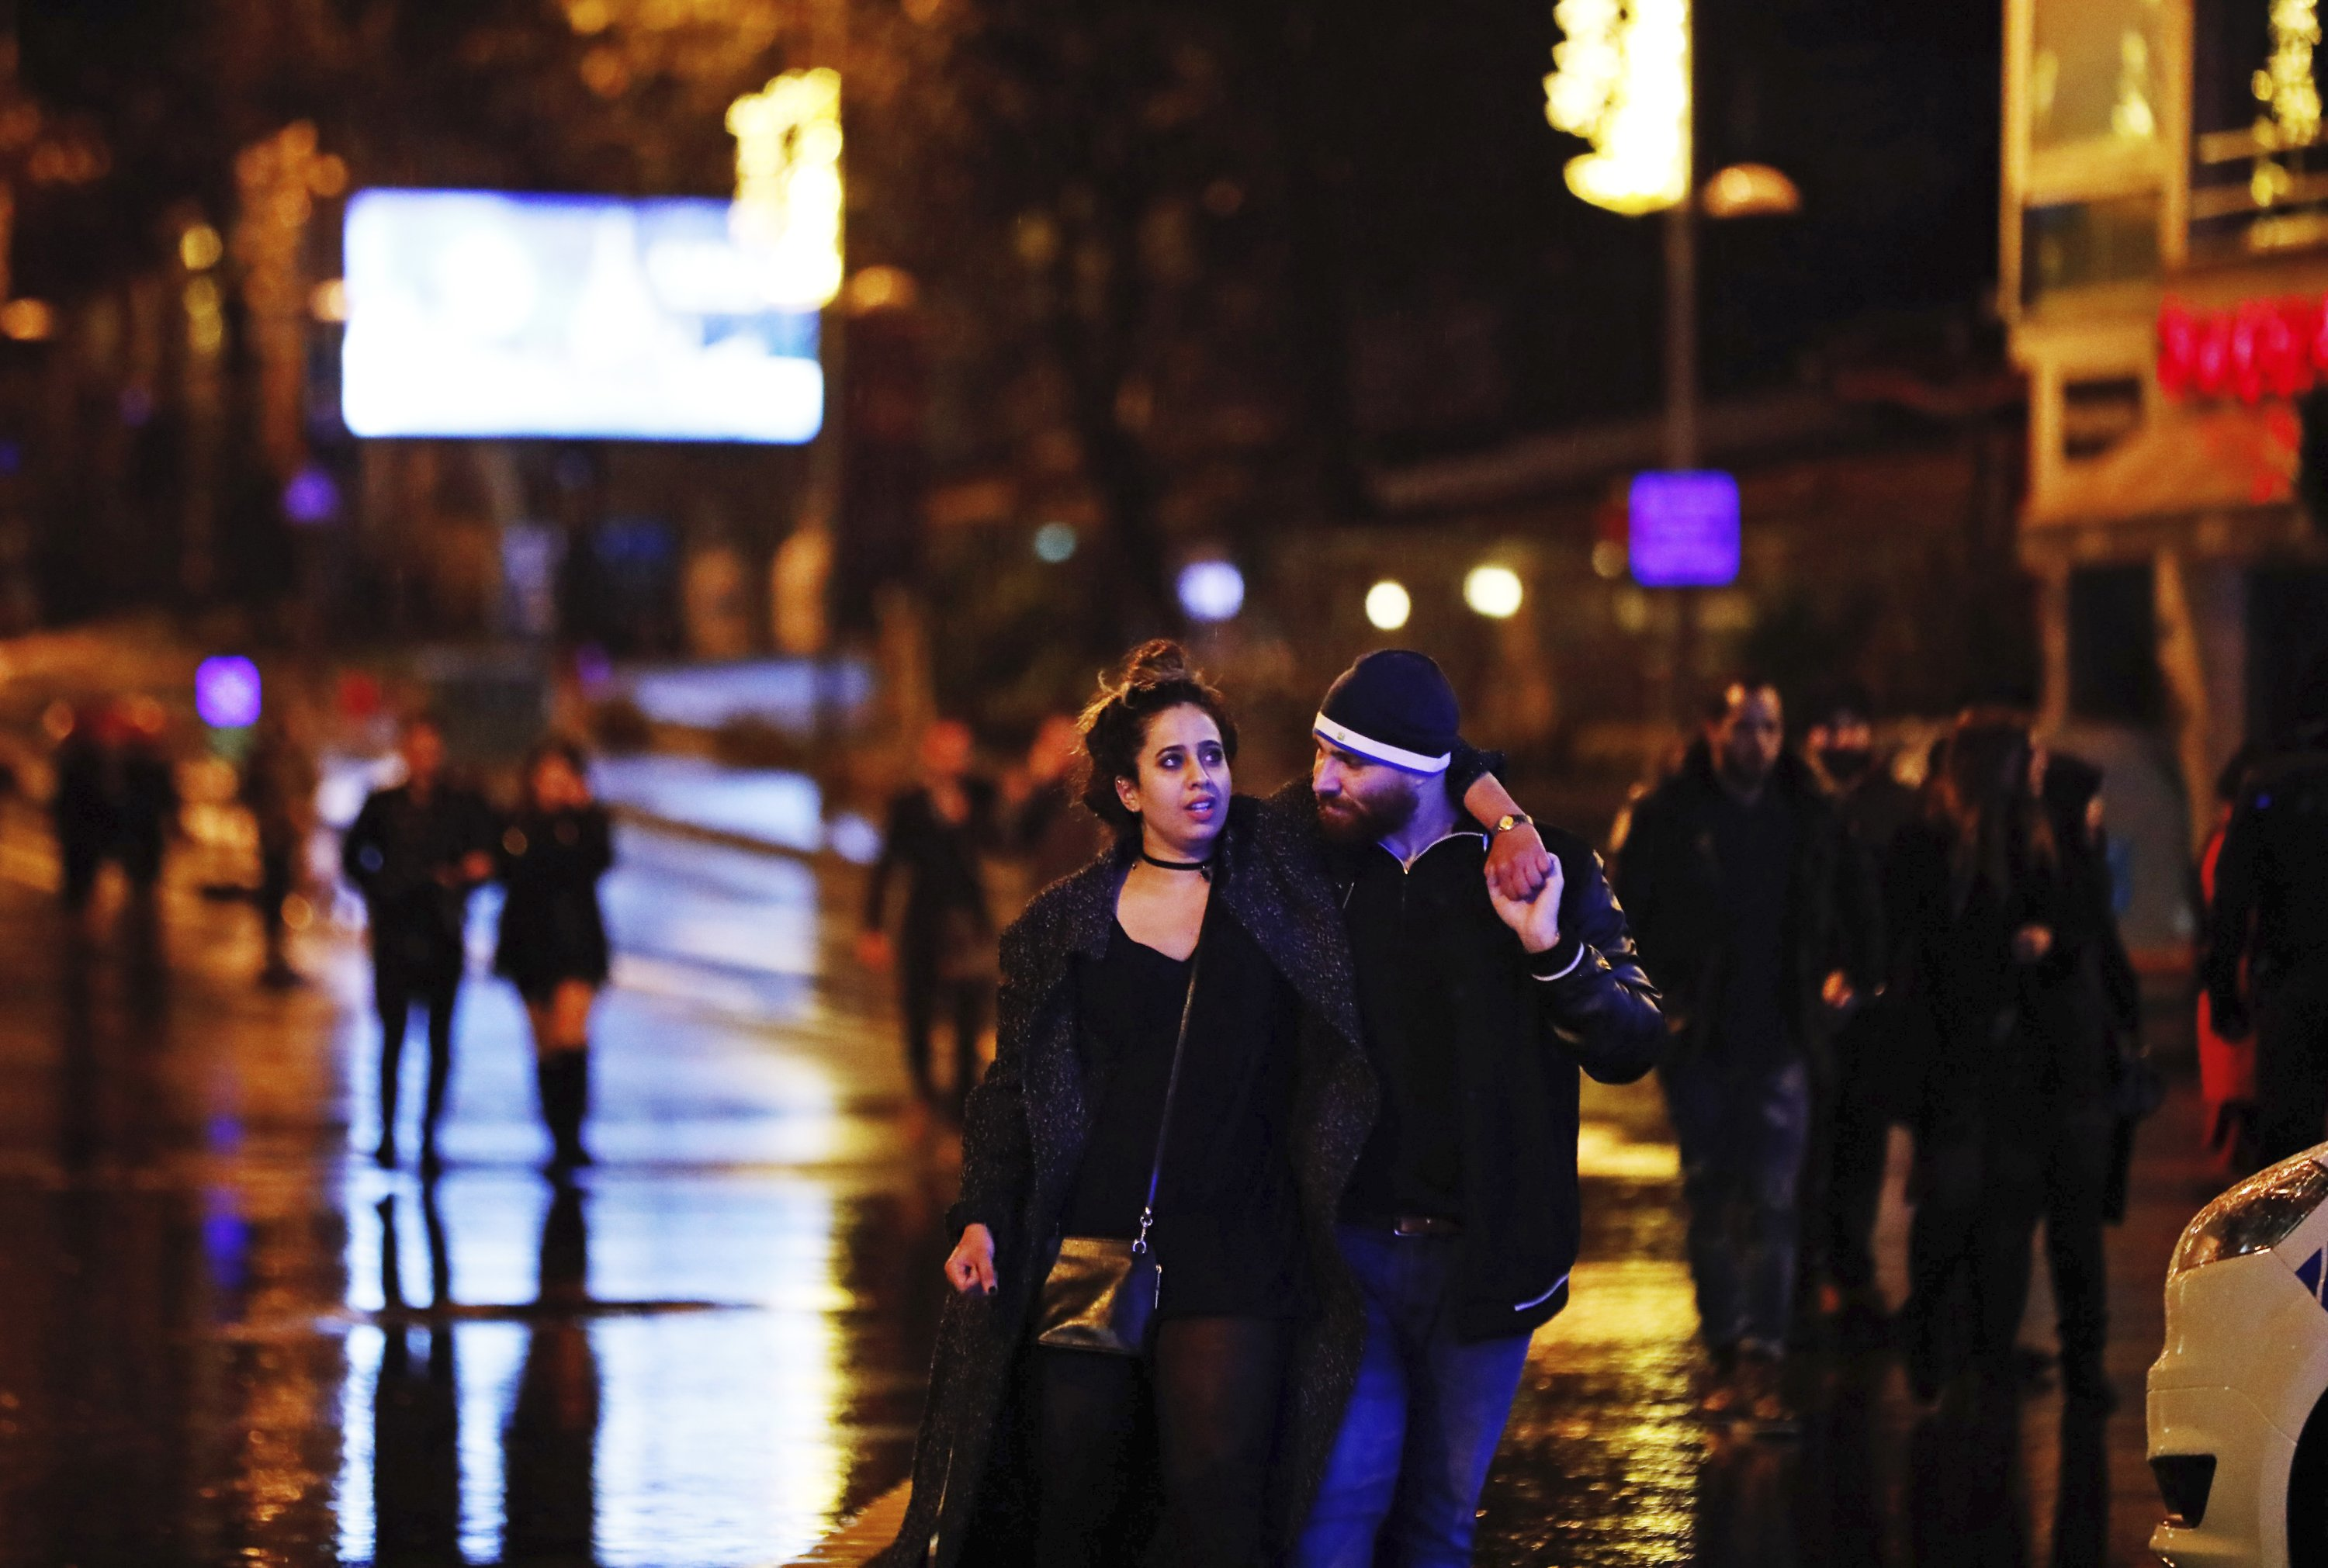 A look at the major attacks in Turkey over the past year